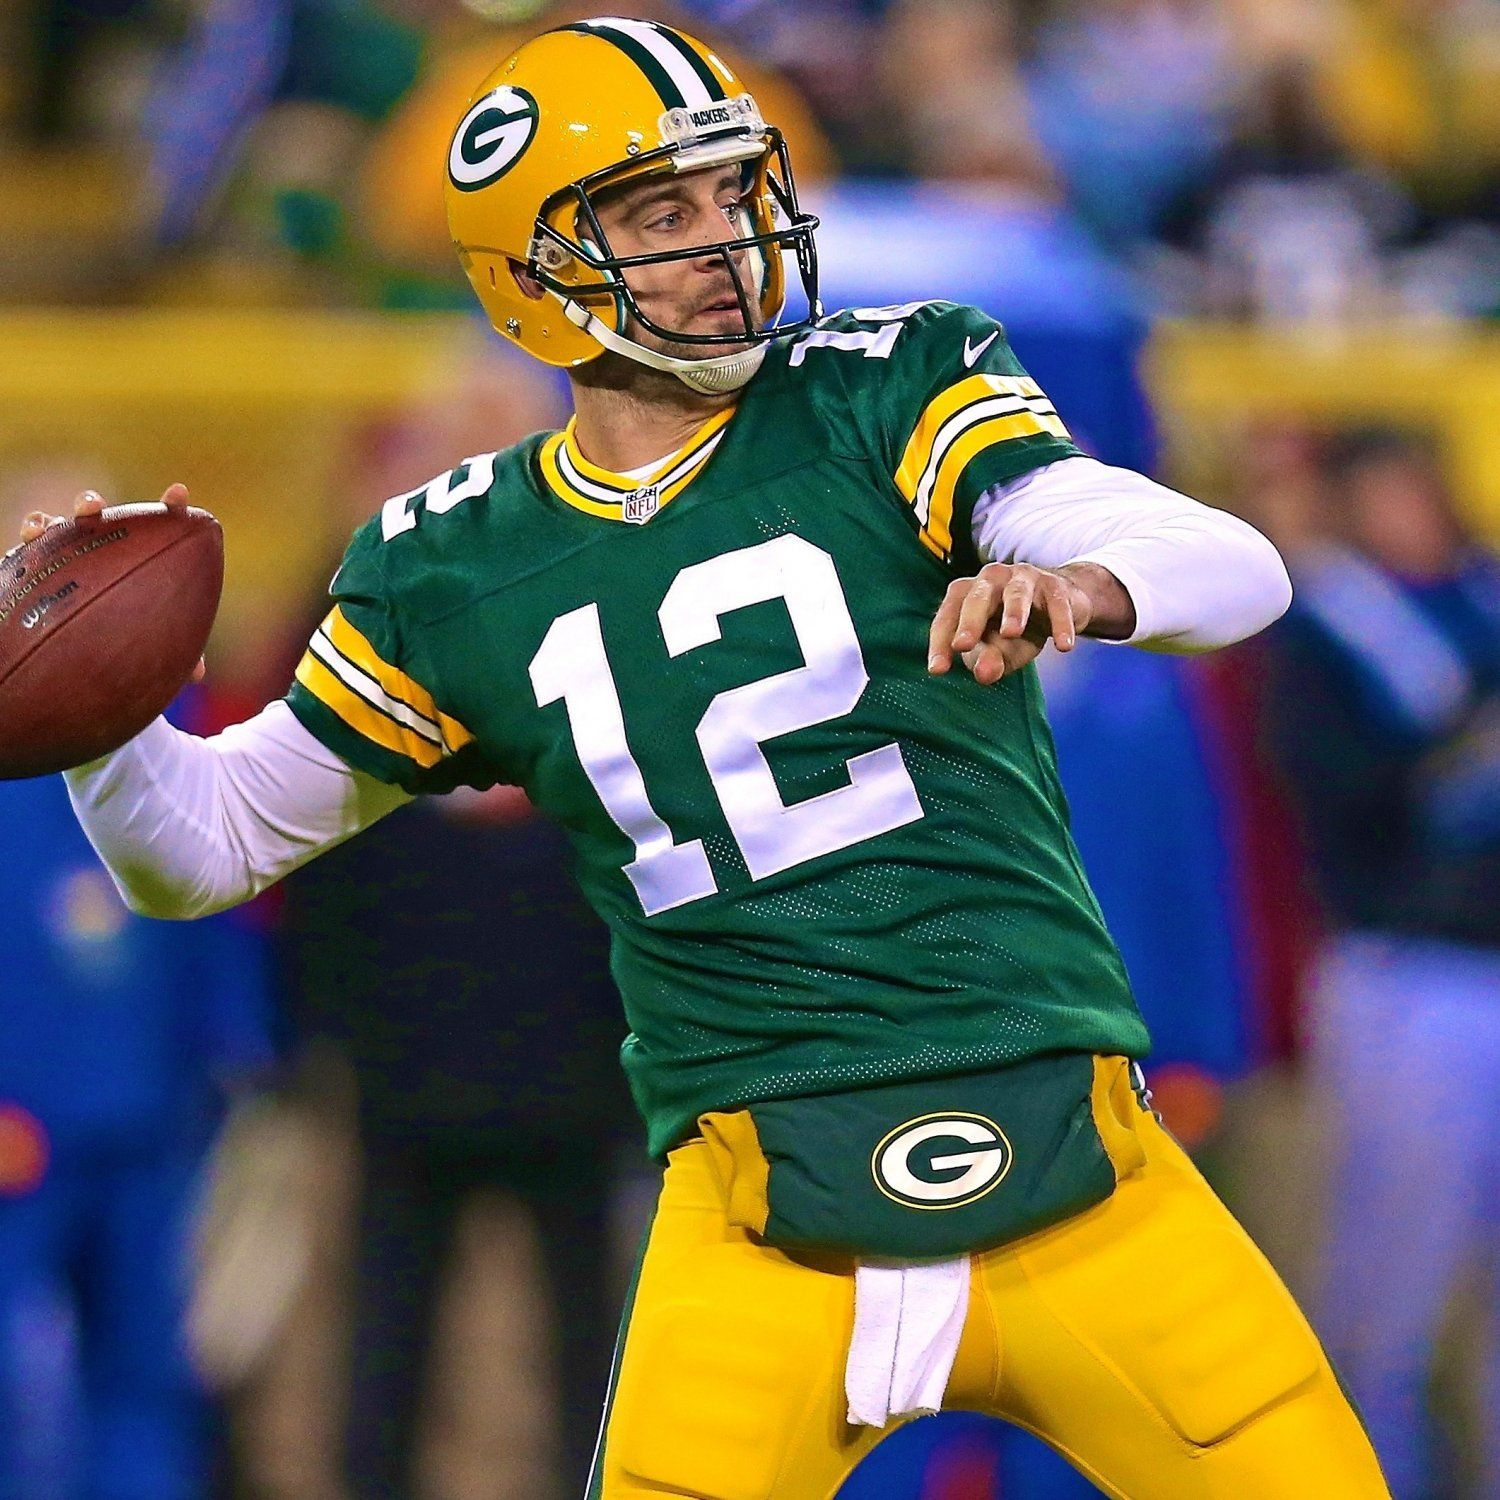 Aaron Rodgers Ties Nfl Record With 6 1st Half Touchdowns Vs Bears Deportes Greatest